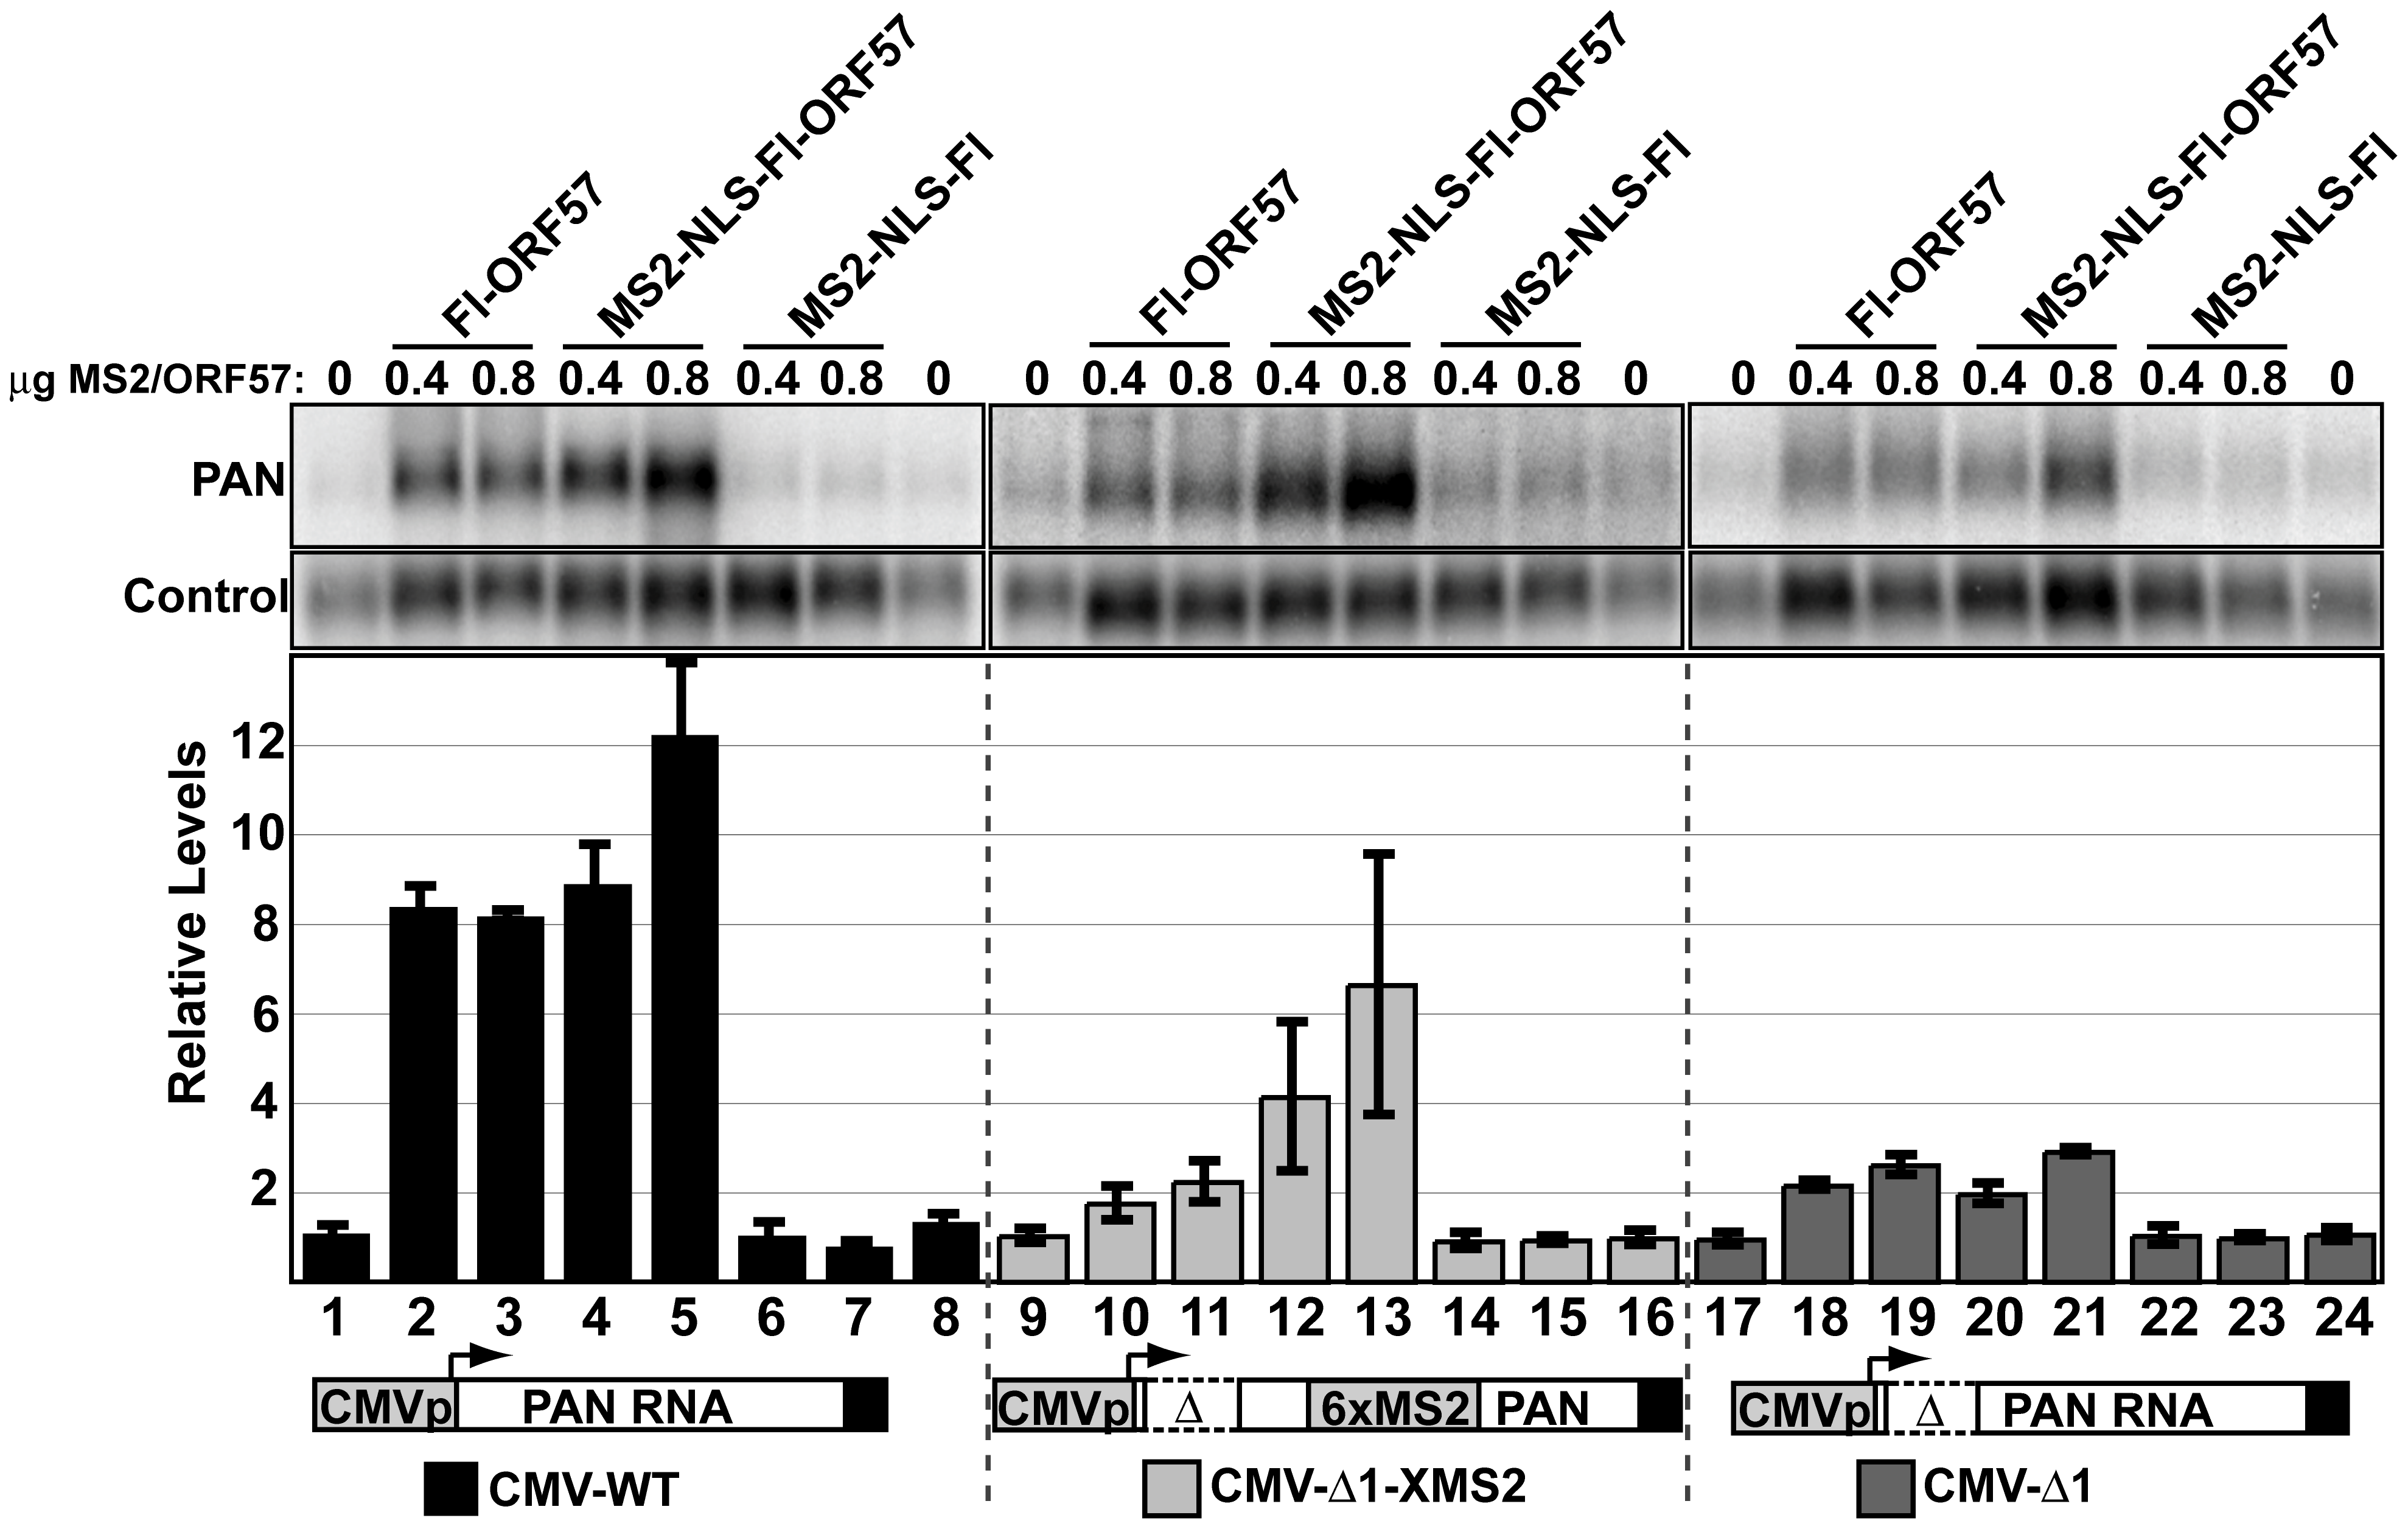 Tethering of ORF57 to CMV-Δ1 restores ORF57-responsiveness.